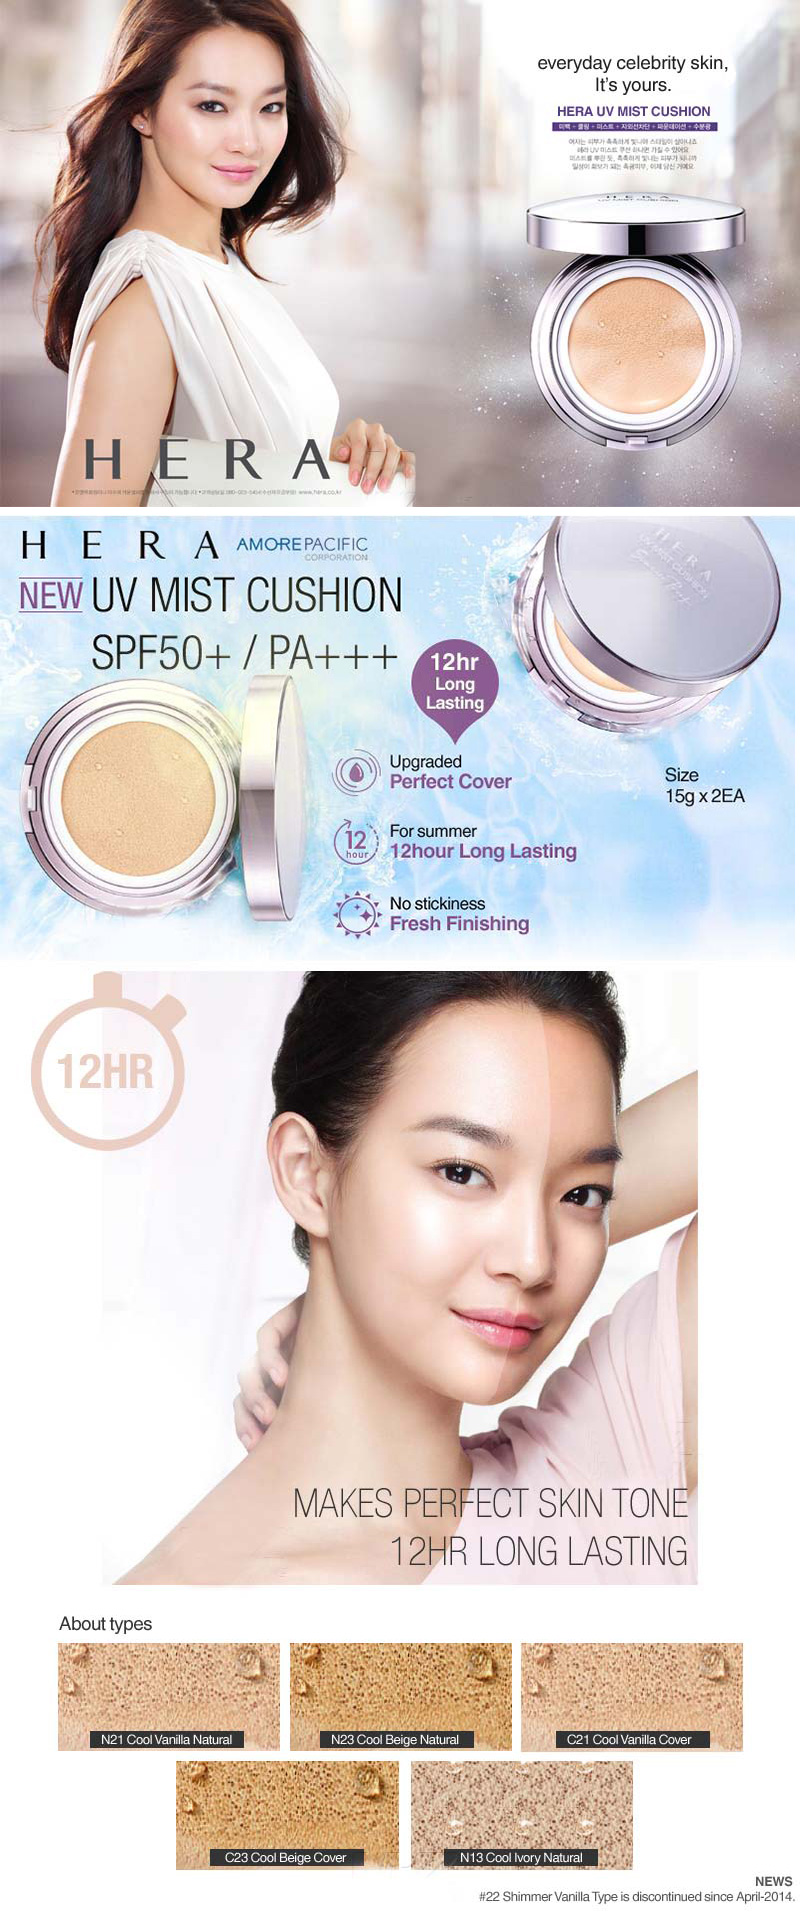 Hera Uv Mist Cushion Regular Spf50 Pa Refill 15g